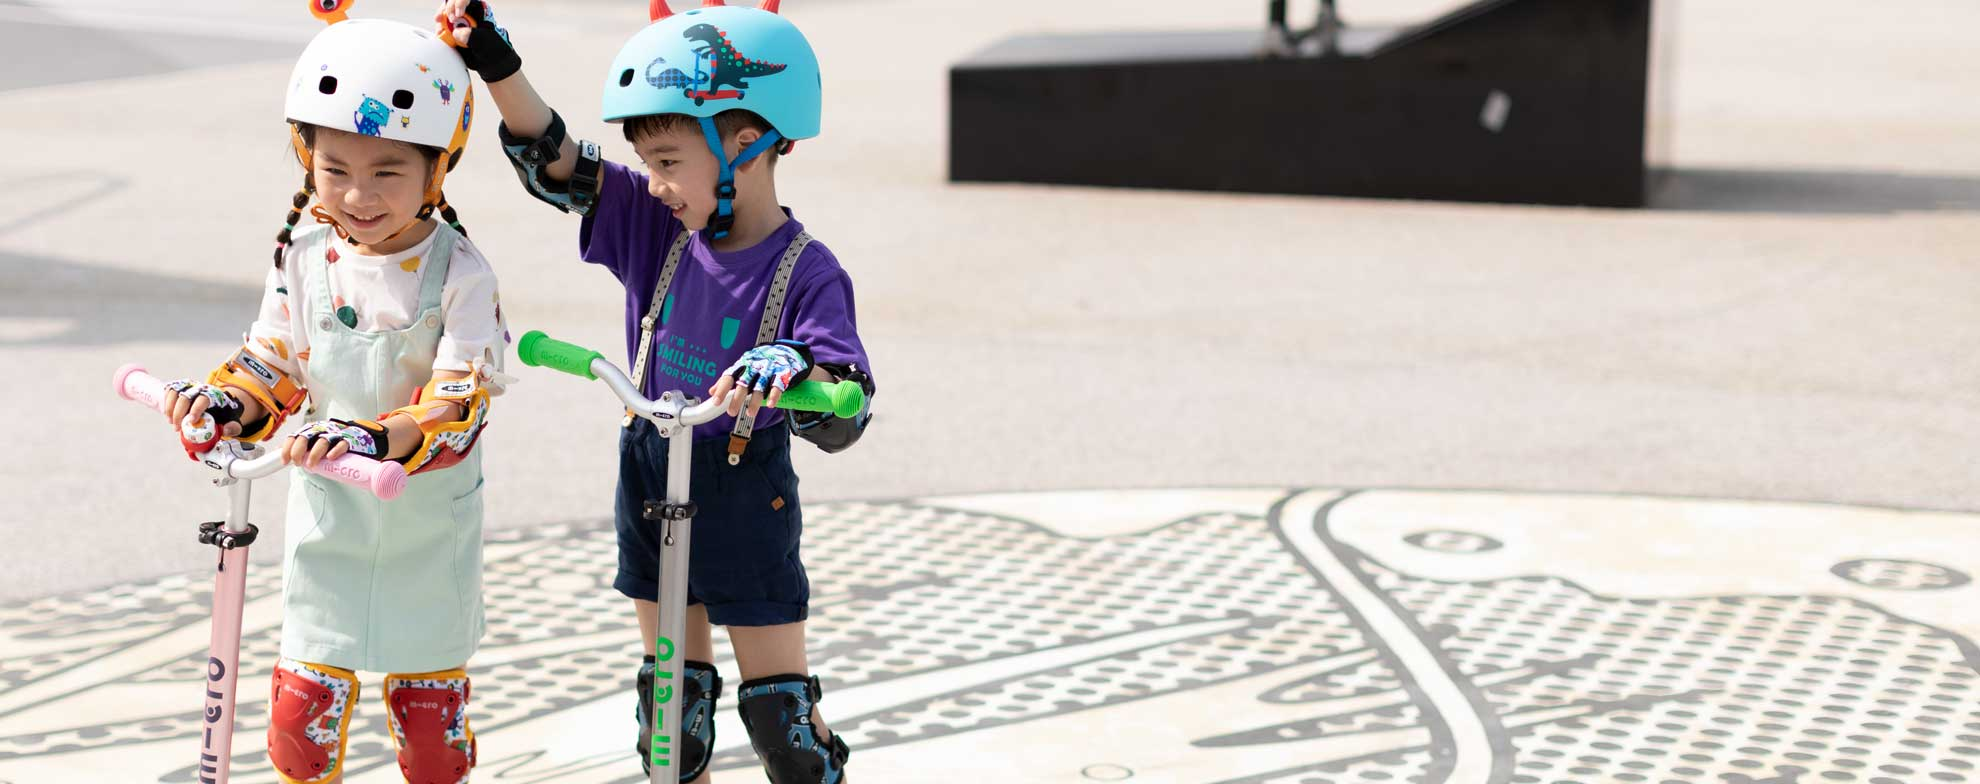 Kids wearing their Micro Scooter Safety Protection Gear